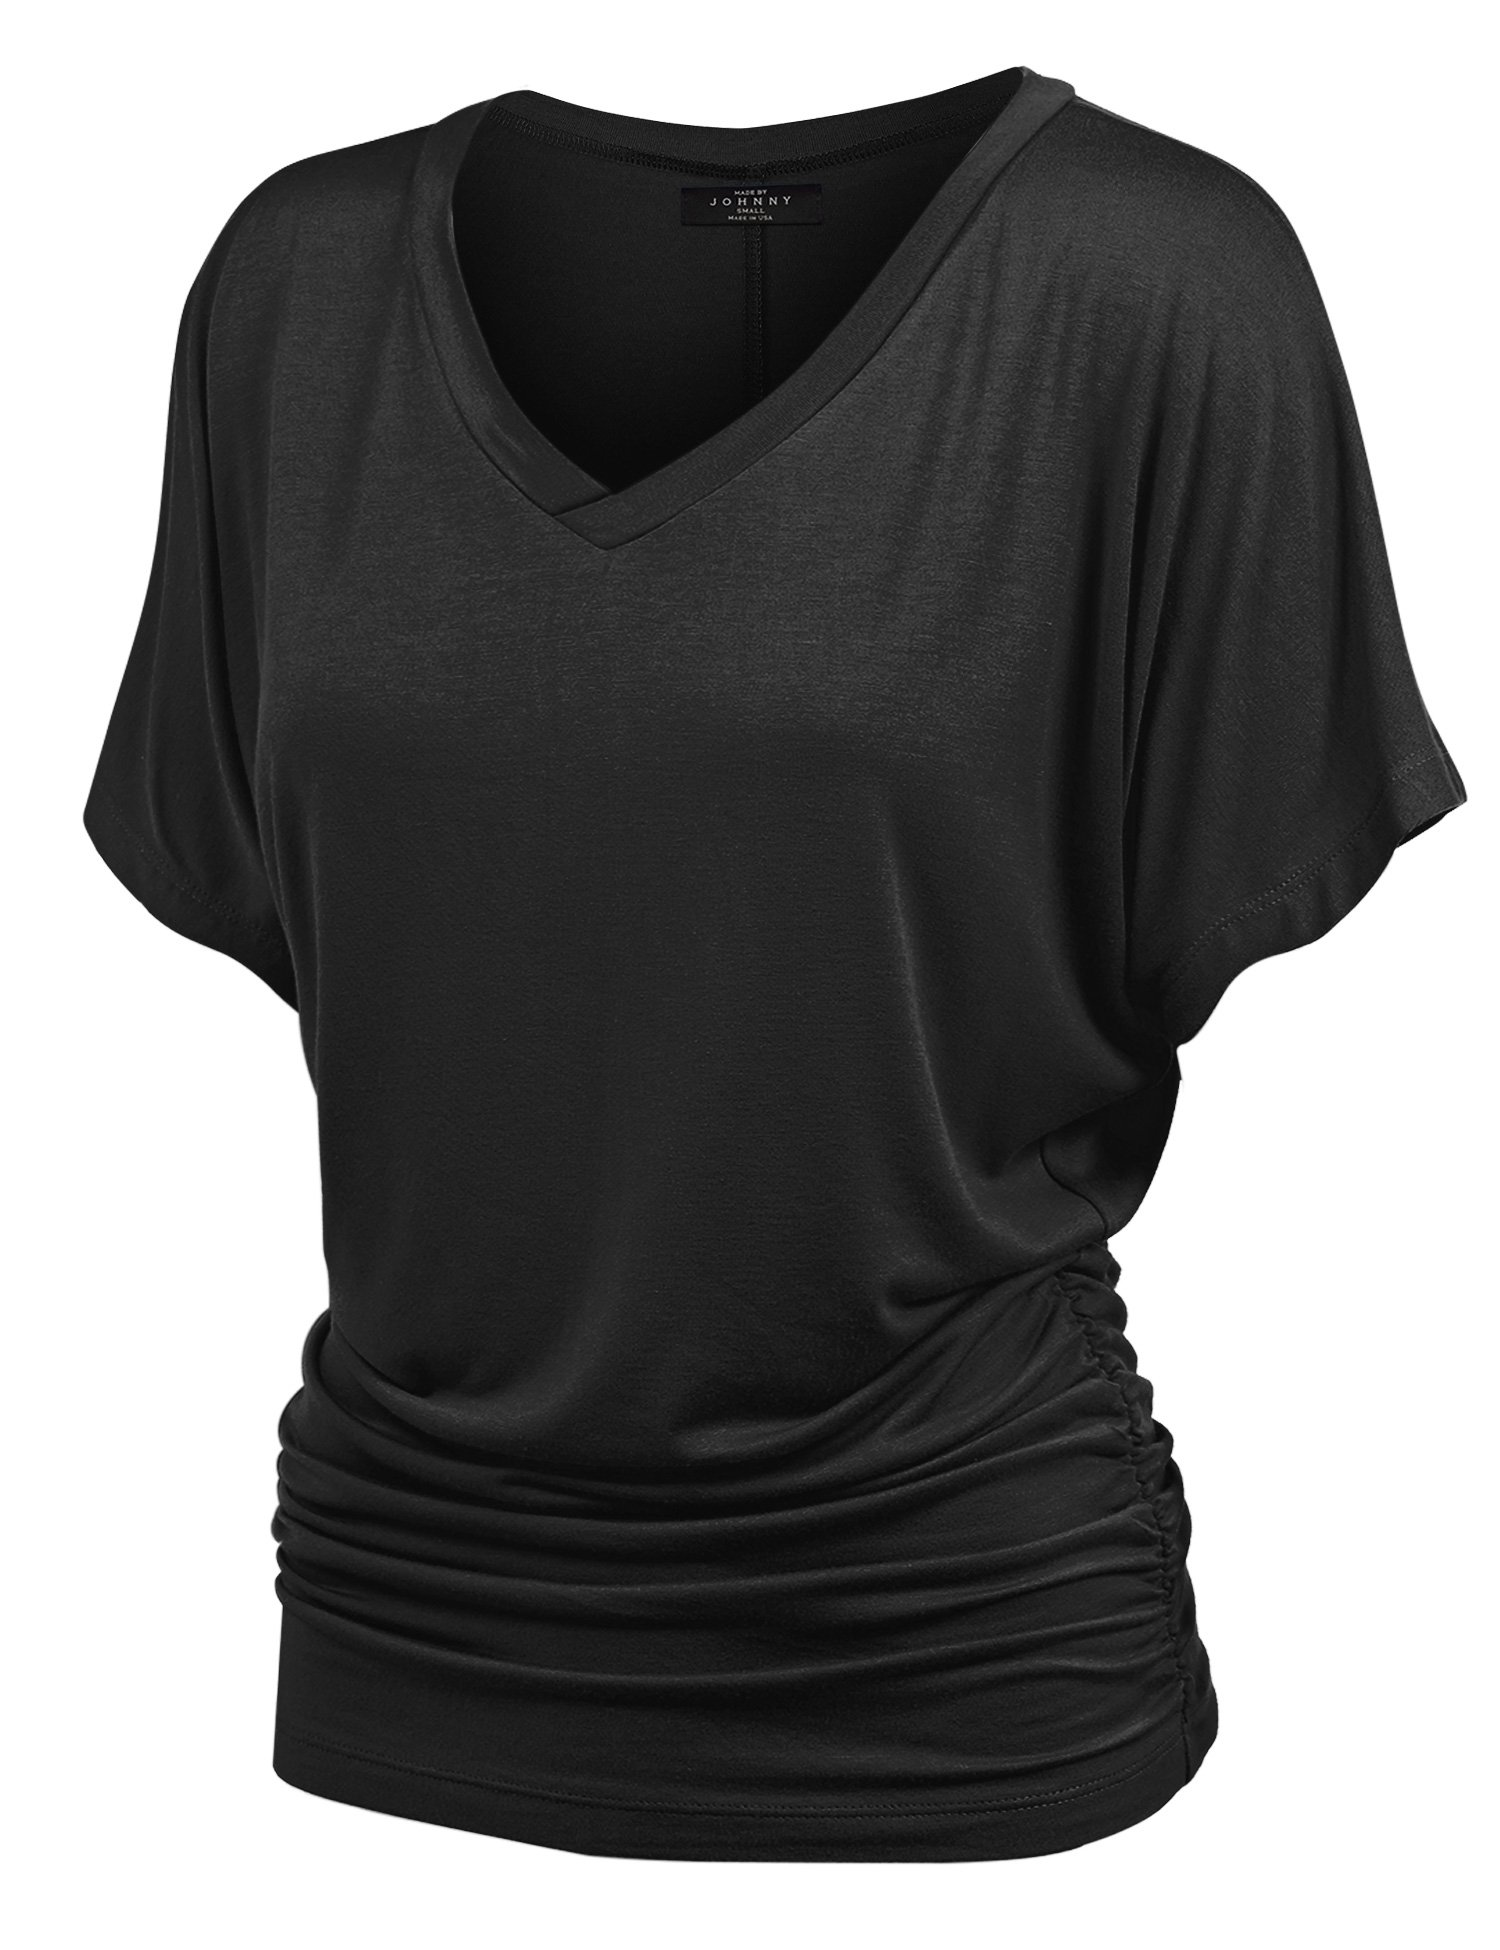 Made By Johnny WT1037 V Neck Short Sleeve Dolman Top with Side Shirring L Black